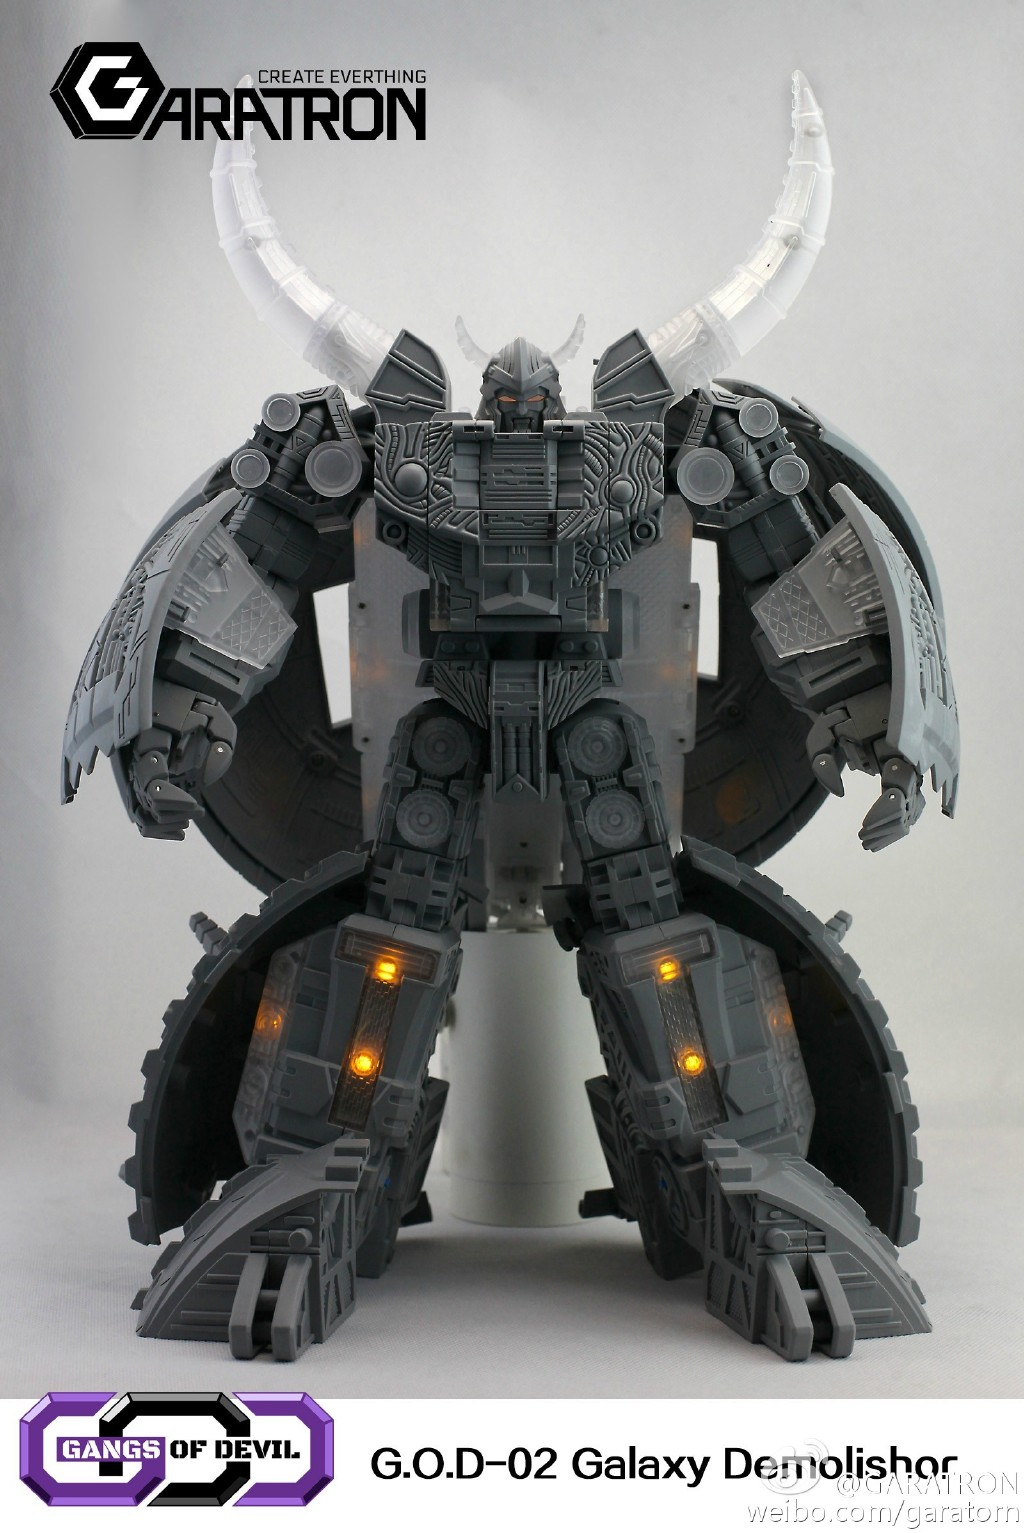 Garatron 3rd Party Unicron Revealed! - Transformers News